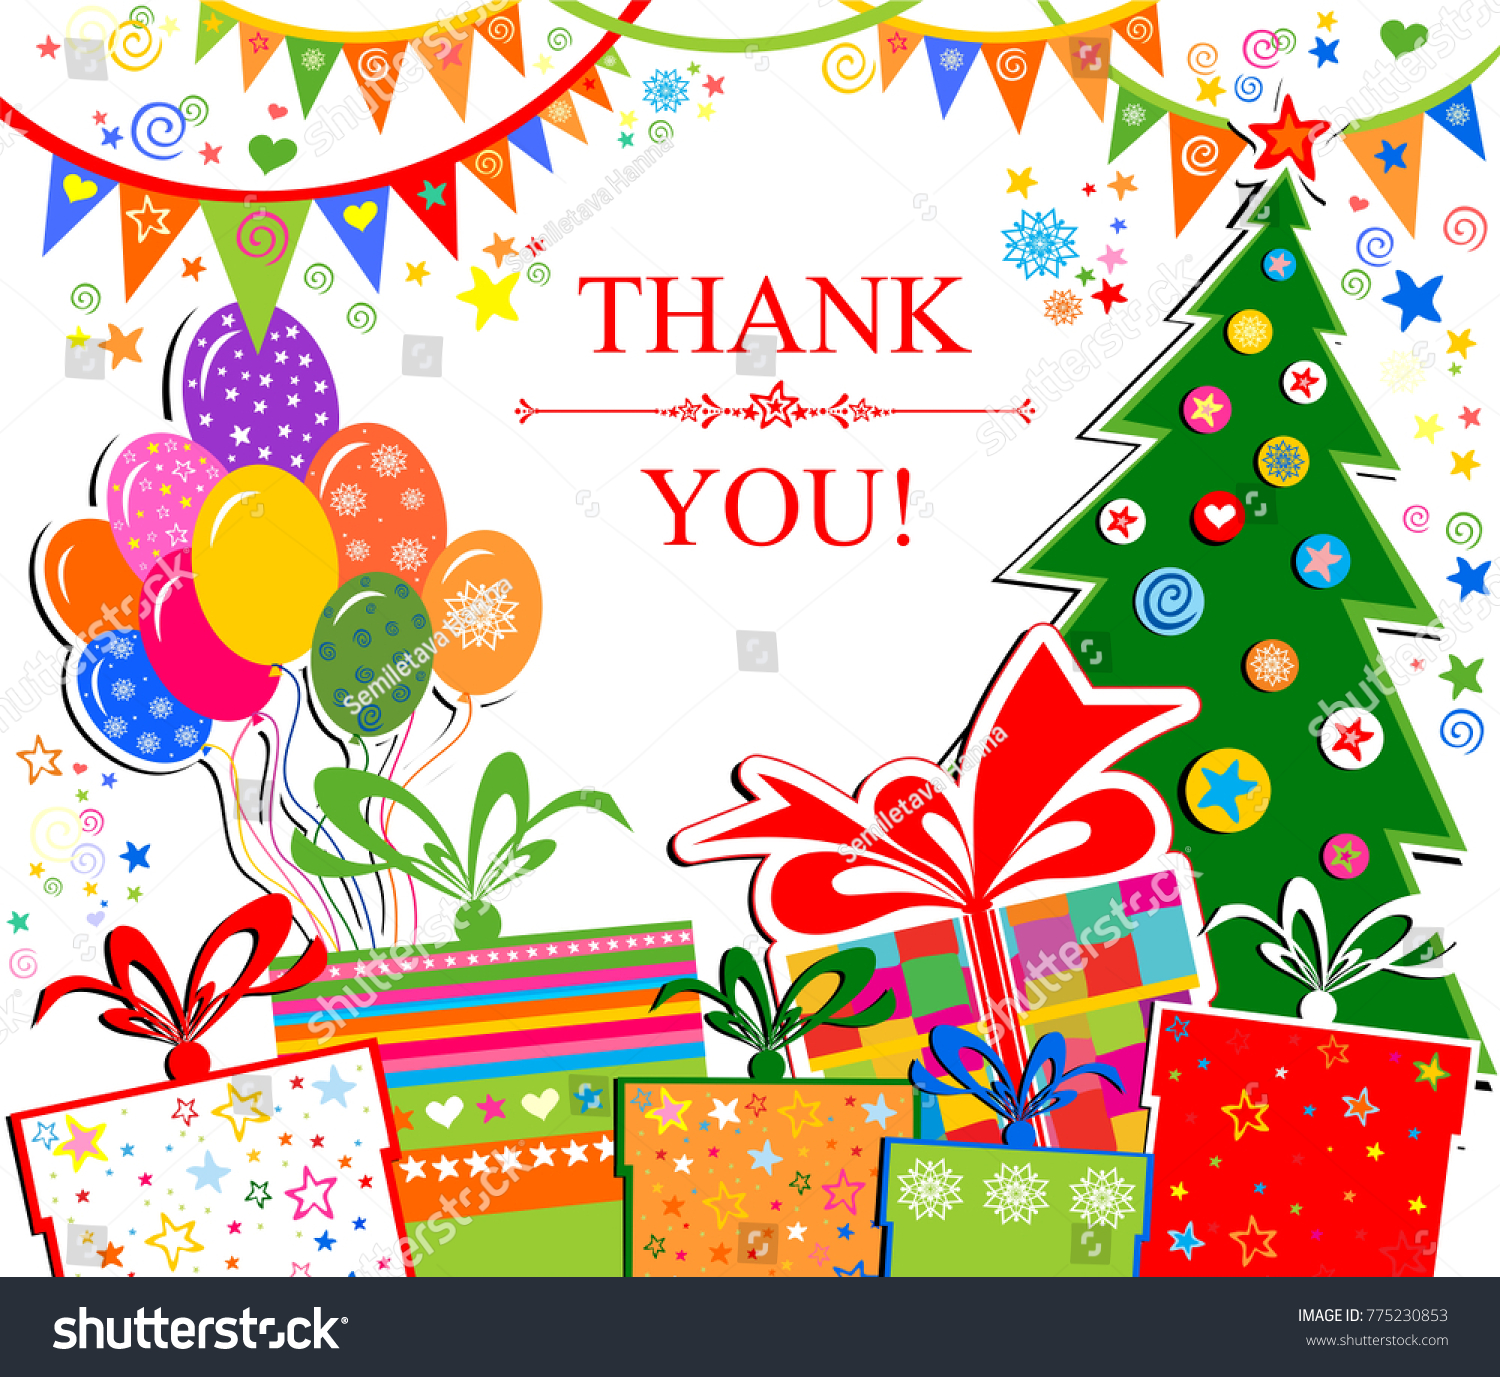 Thank You Card Celebration Background Christmas Stock Vector ...